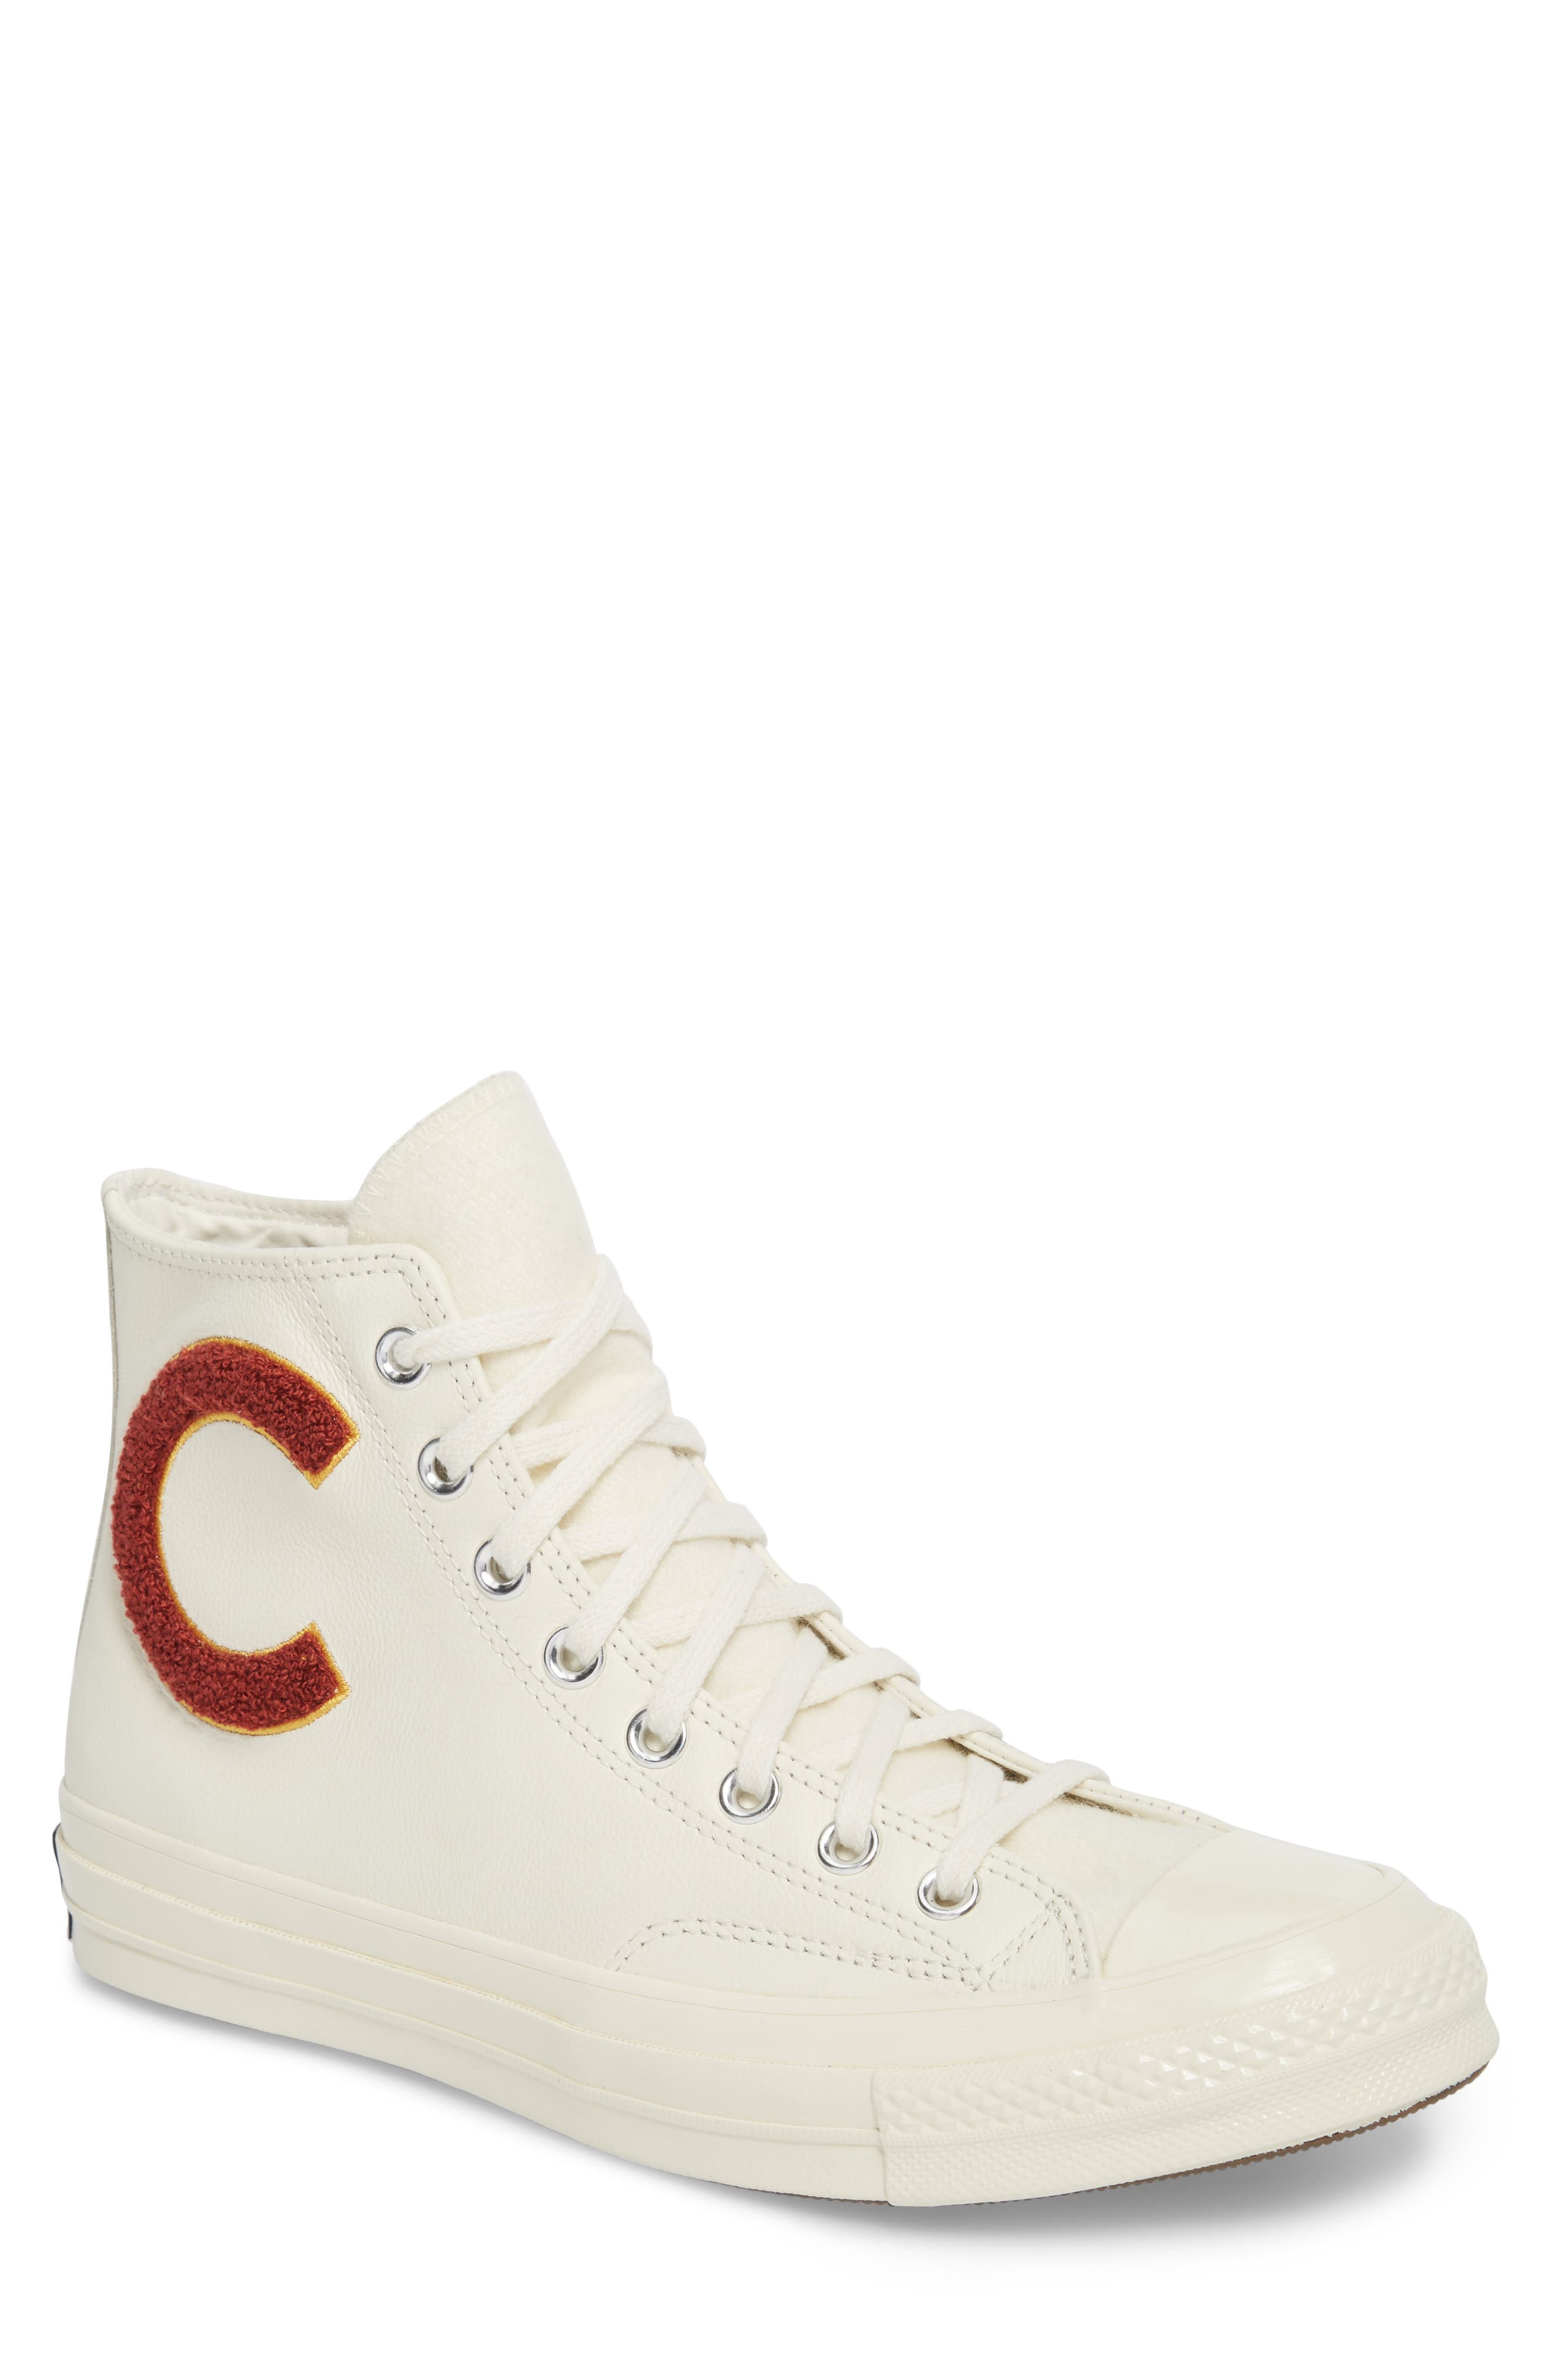 CONVERSE,                             Chuck Taylor<sup>®</sup> All Star<sup>®</sup> Wordmark High Top Sneaker,                             Main thumbnail 1, color,                             281